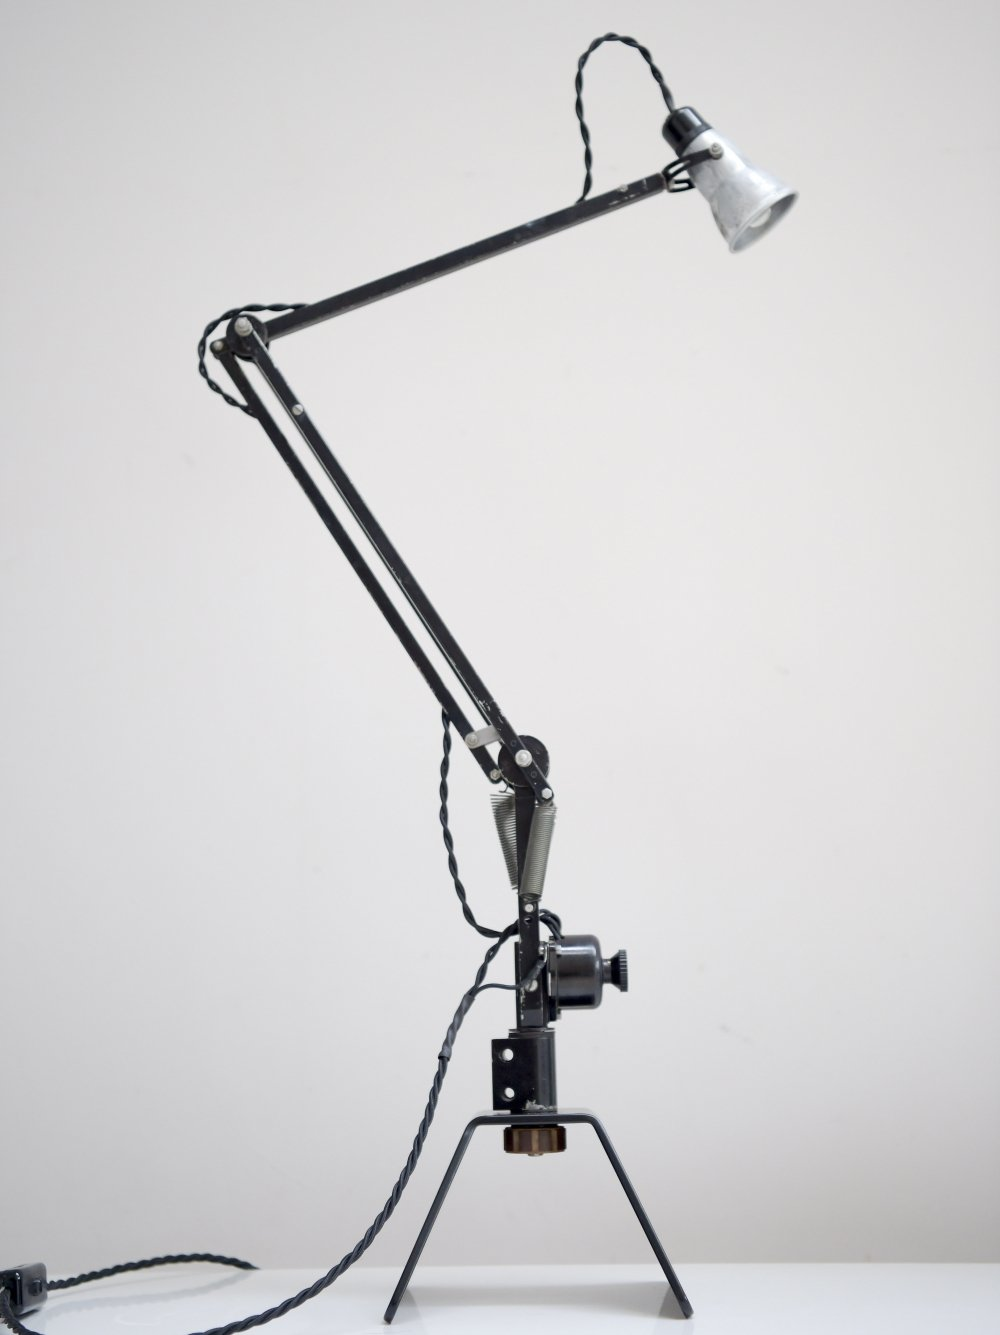 WW2 air ministry navigators Anglepoise lamp (5c/1079) by Herbert Terry & Sons